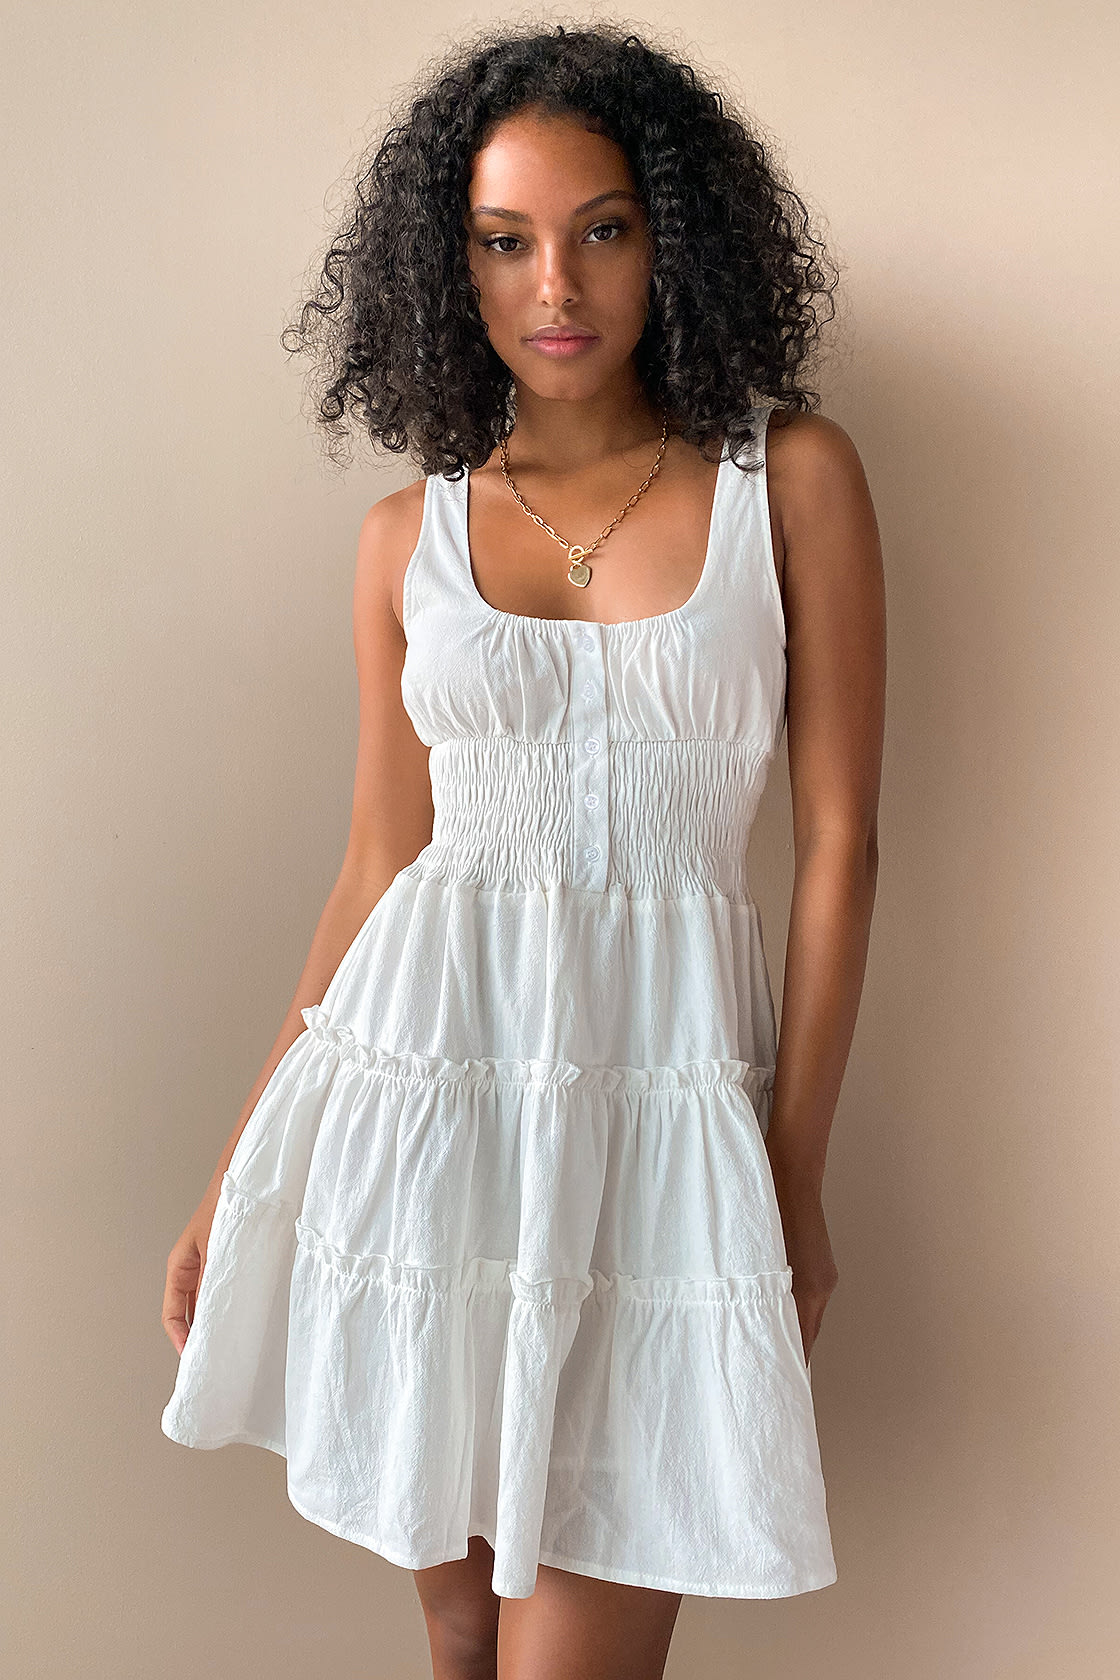 Your Sunny Day White Tiered Smocked Mini Dress